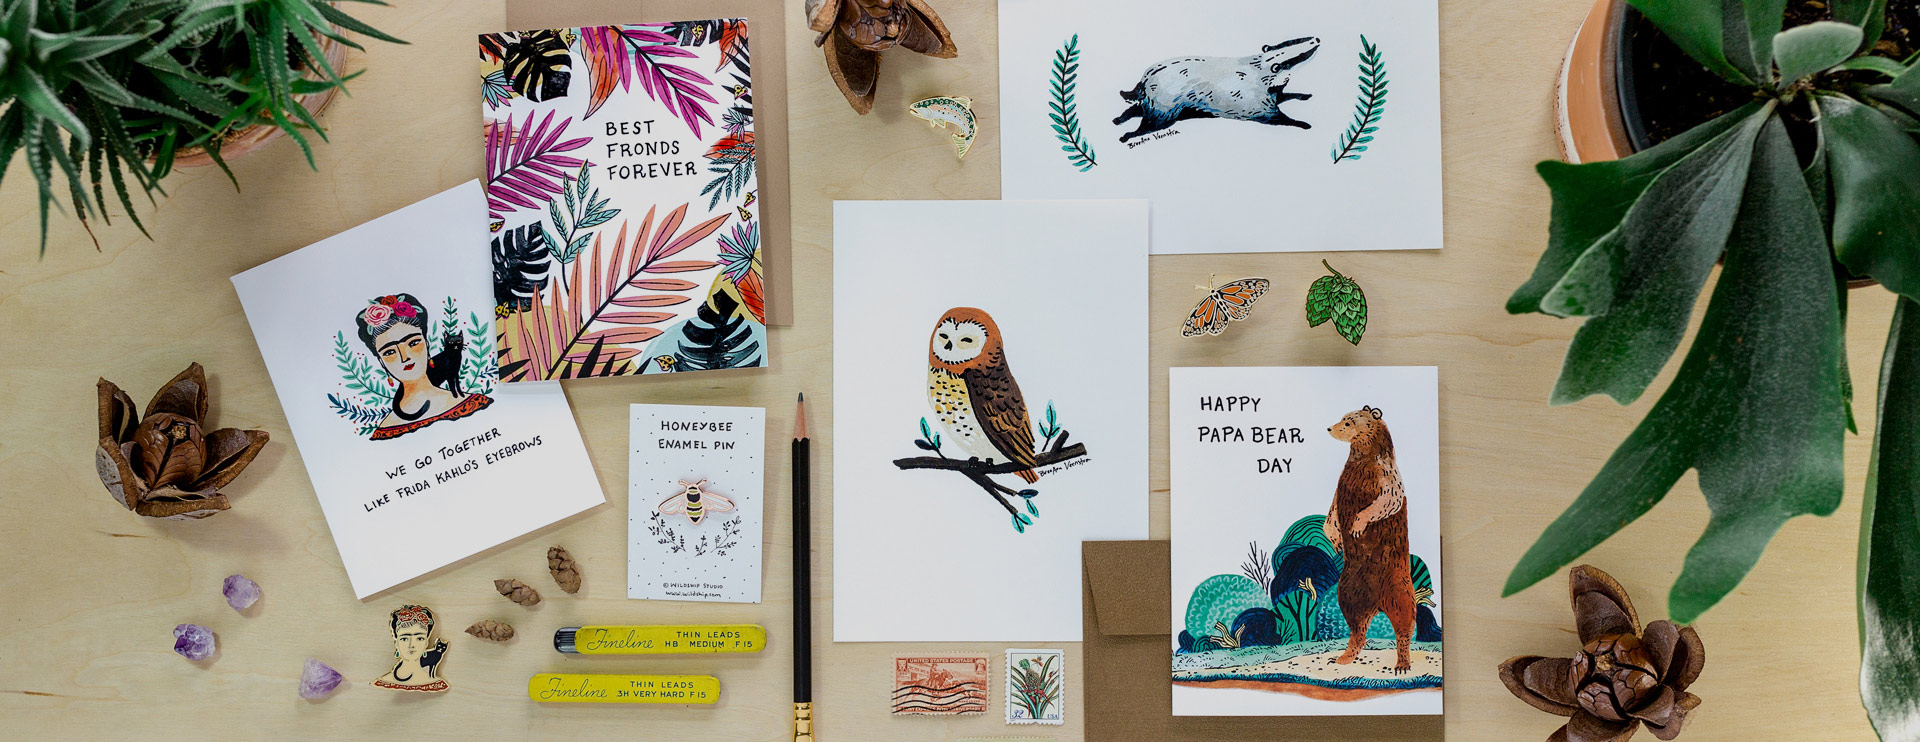 illustrated cards art prints and pins made by wildship studio styled on a light wood backdrop with plants and stamps